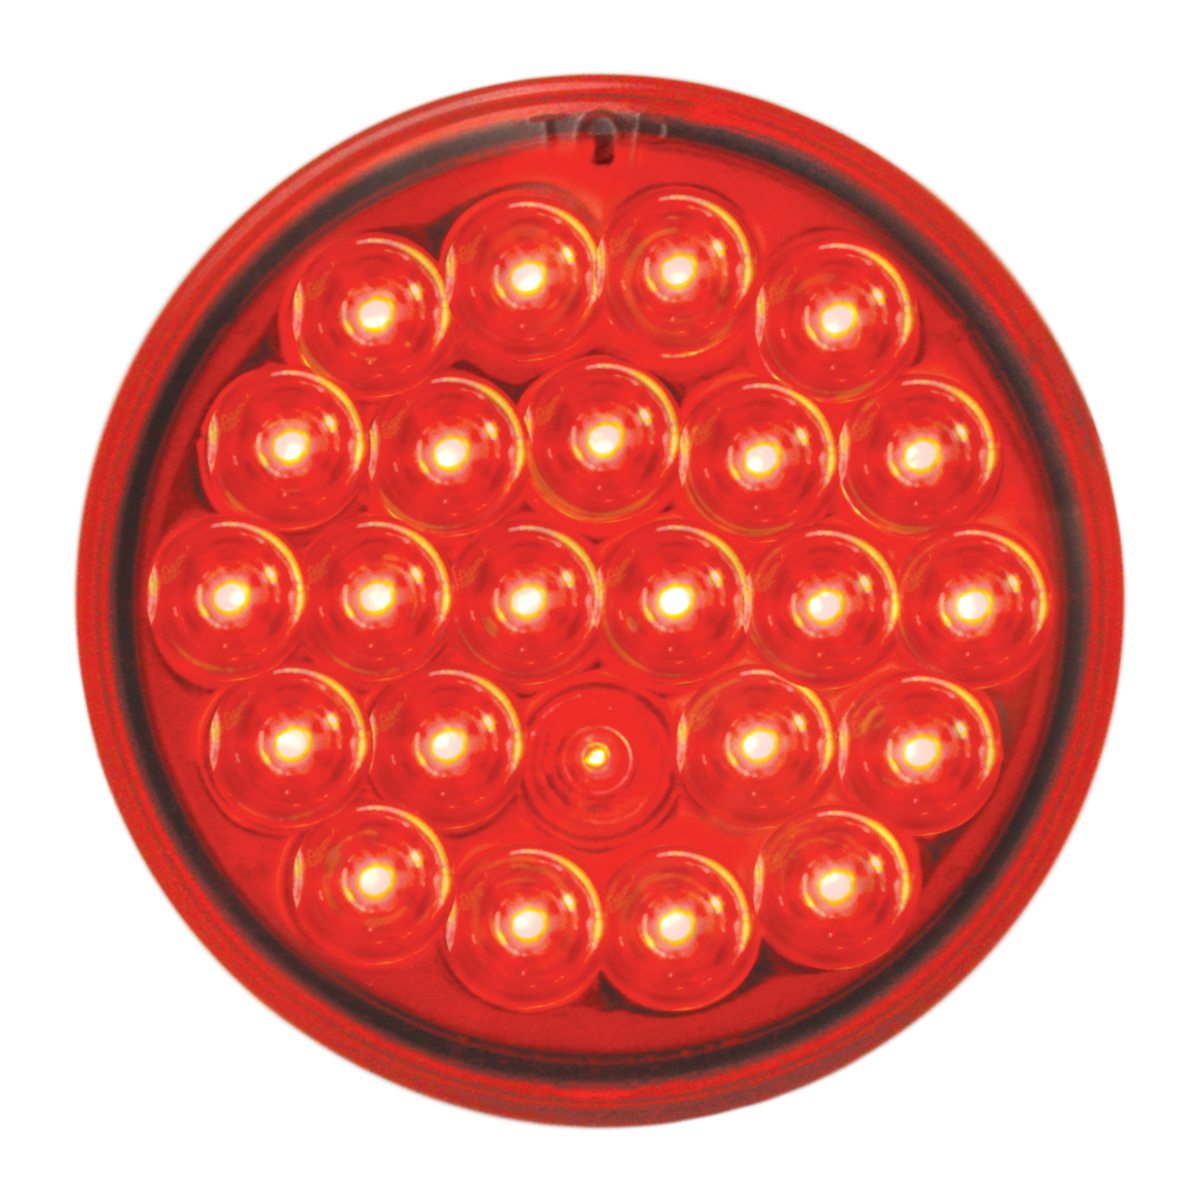 "78273 4"" Round Pearl LED Flat - Red/Red"